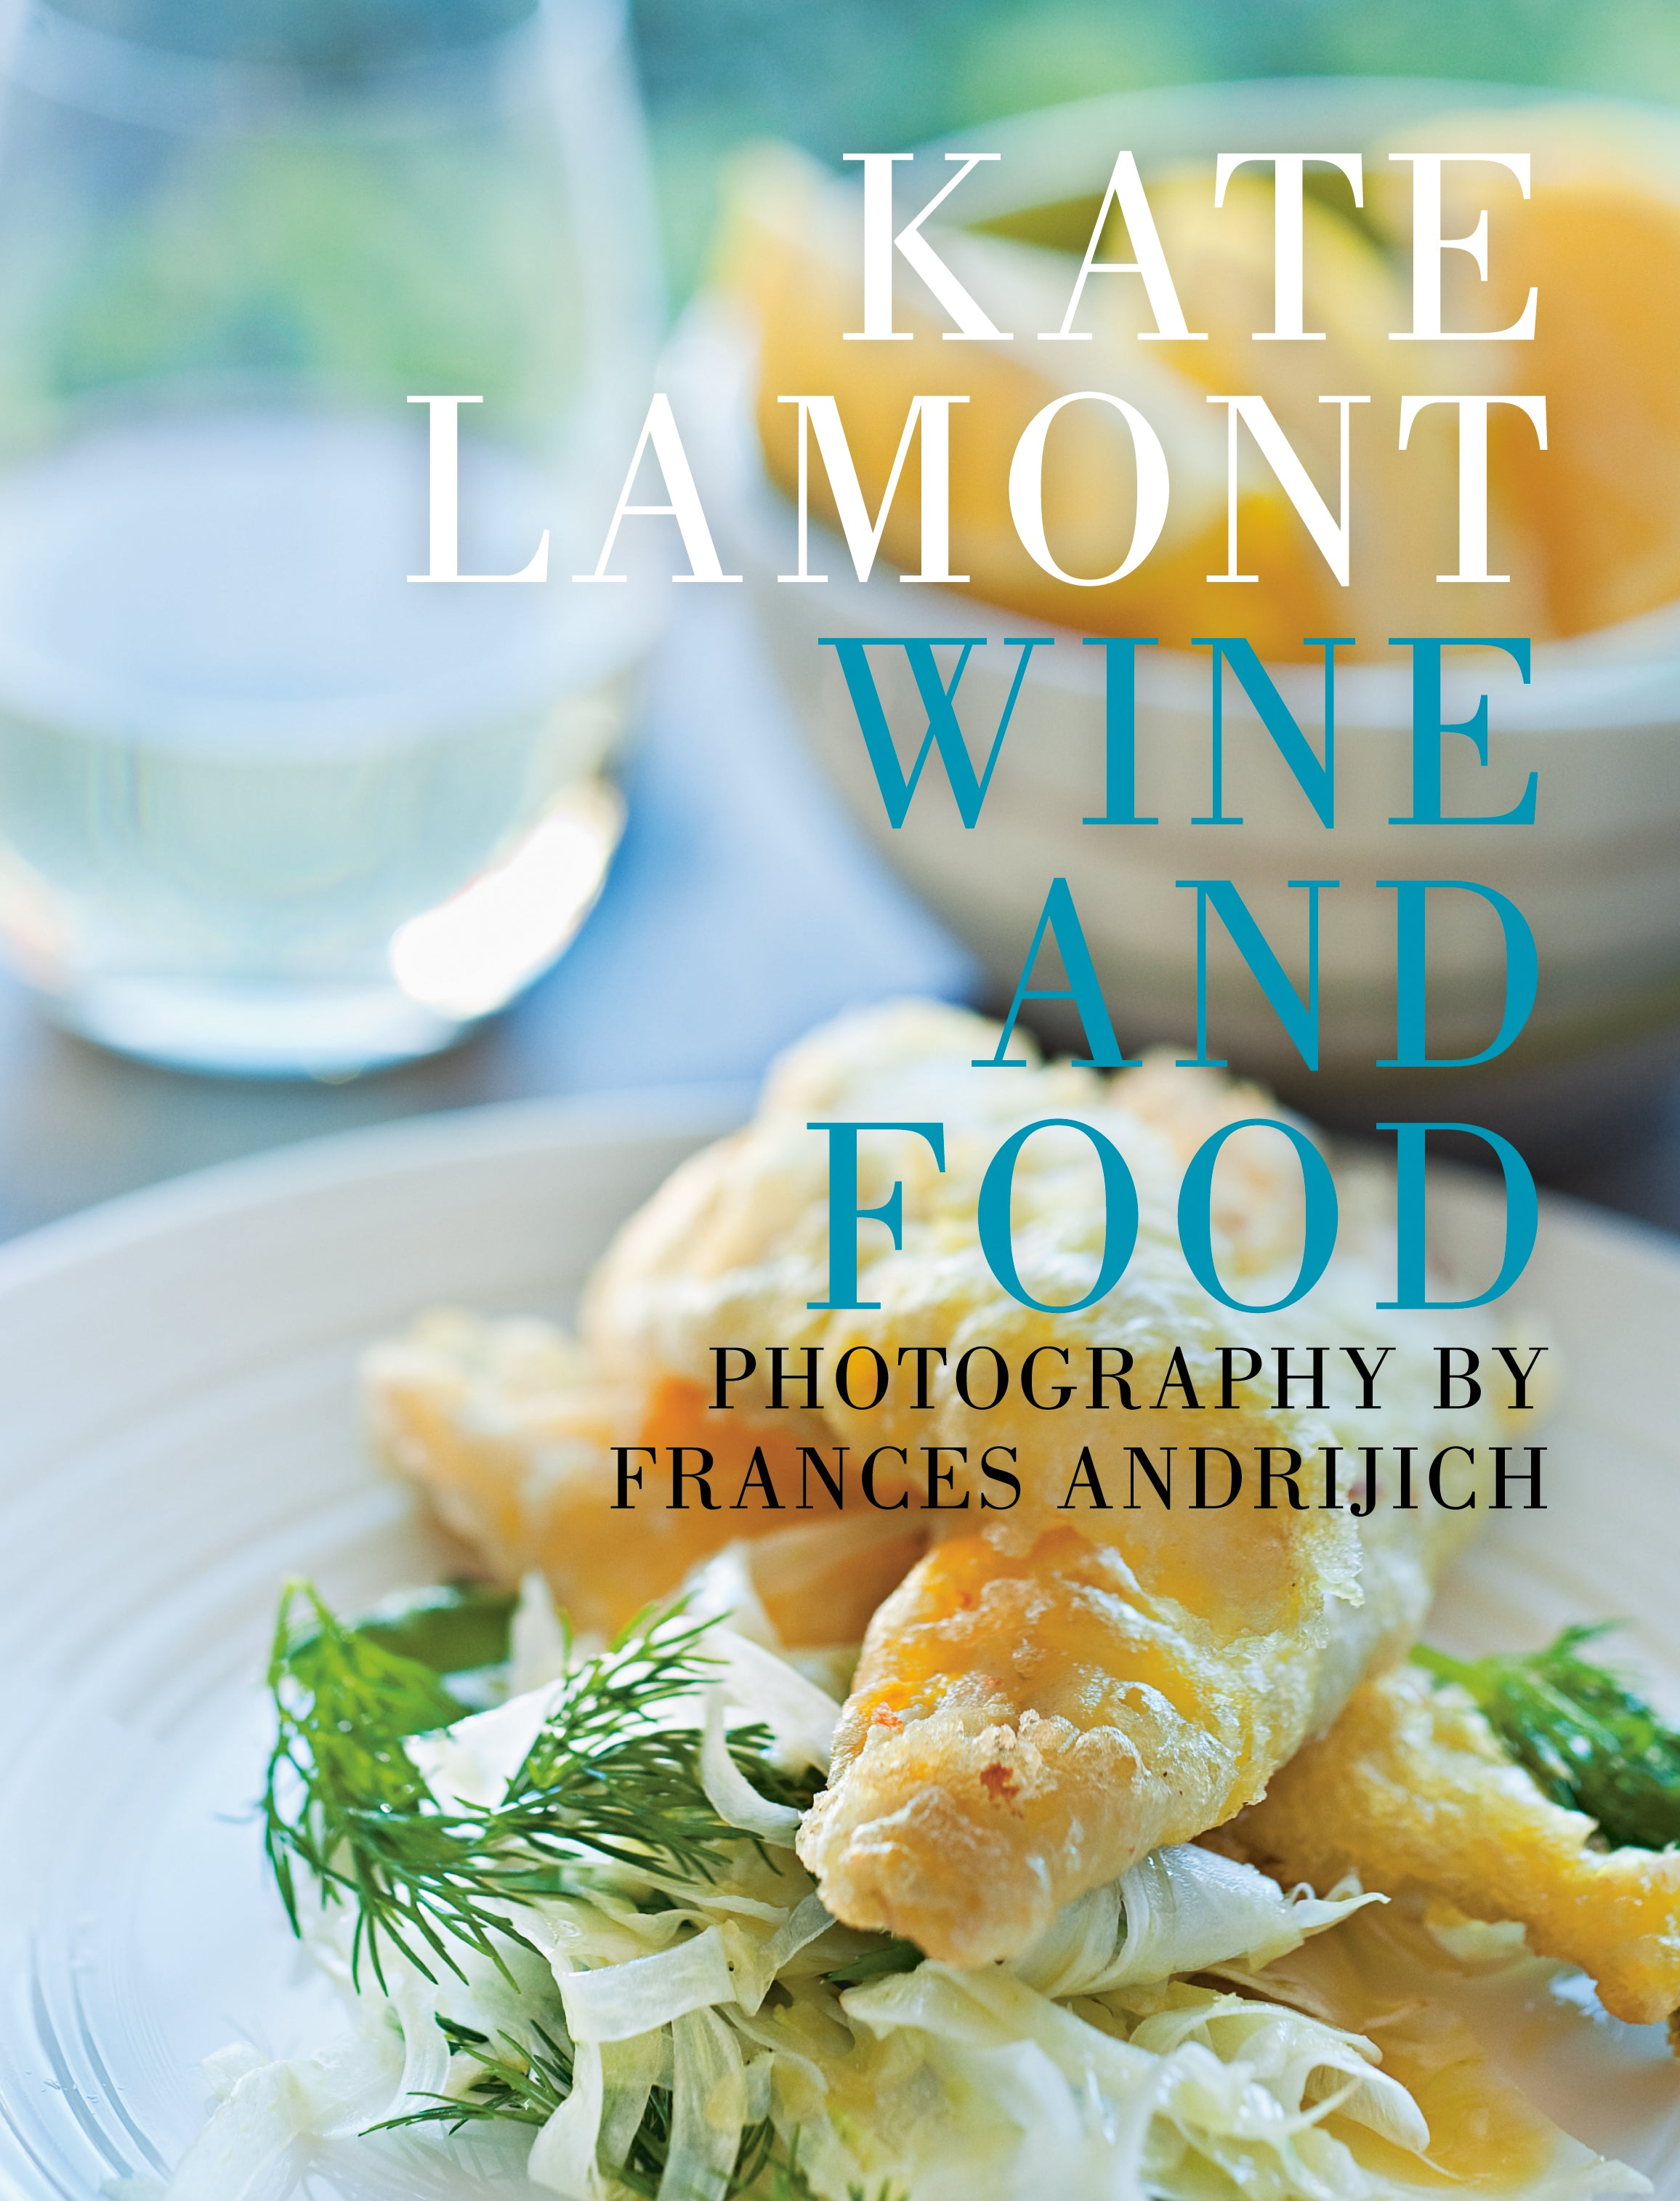 Wine and food uwa publishing high res cover image forumfinder Choice Image